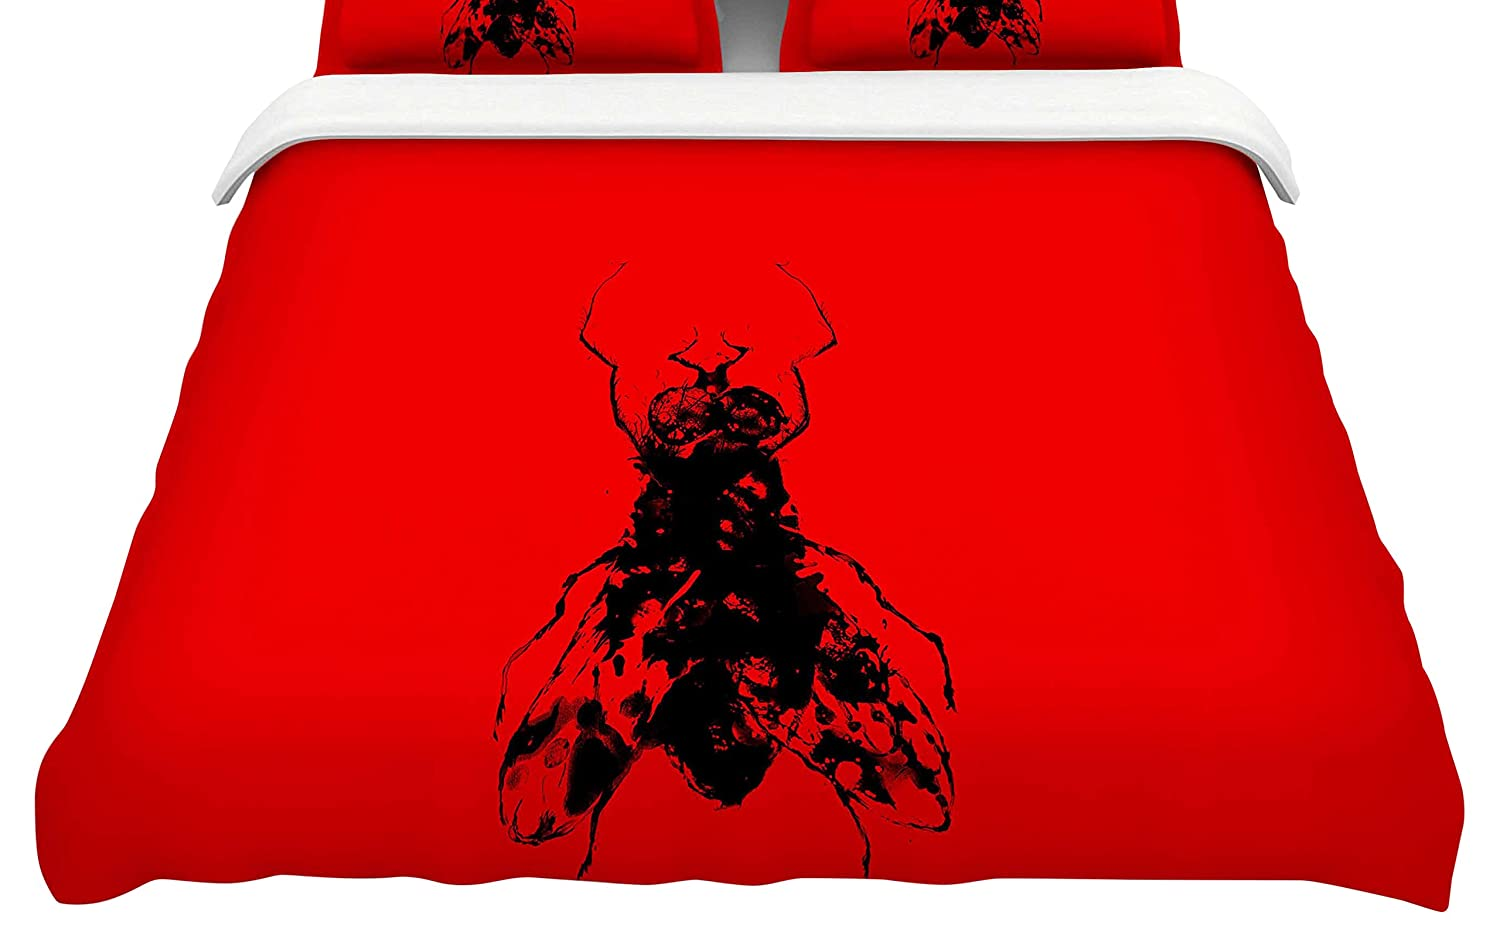 88 x 88, Kess InHouse BarmalisiRTB The Fly Black White Featherweight Queen Duvet Cover